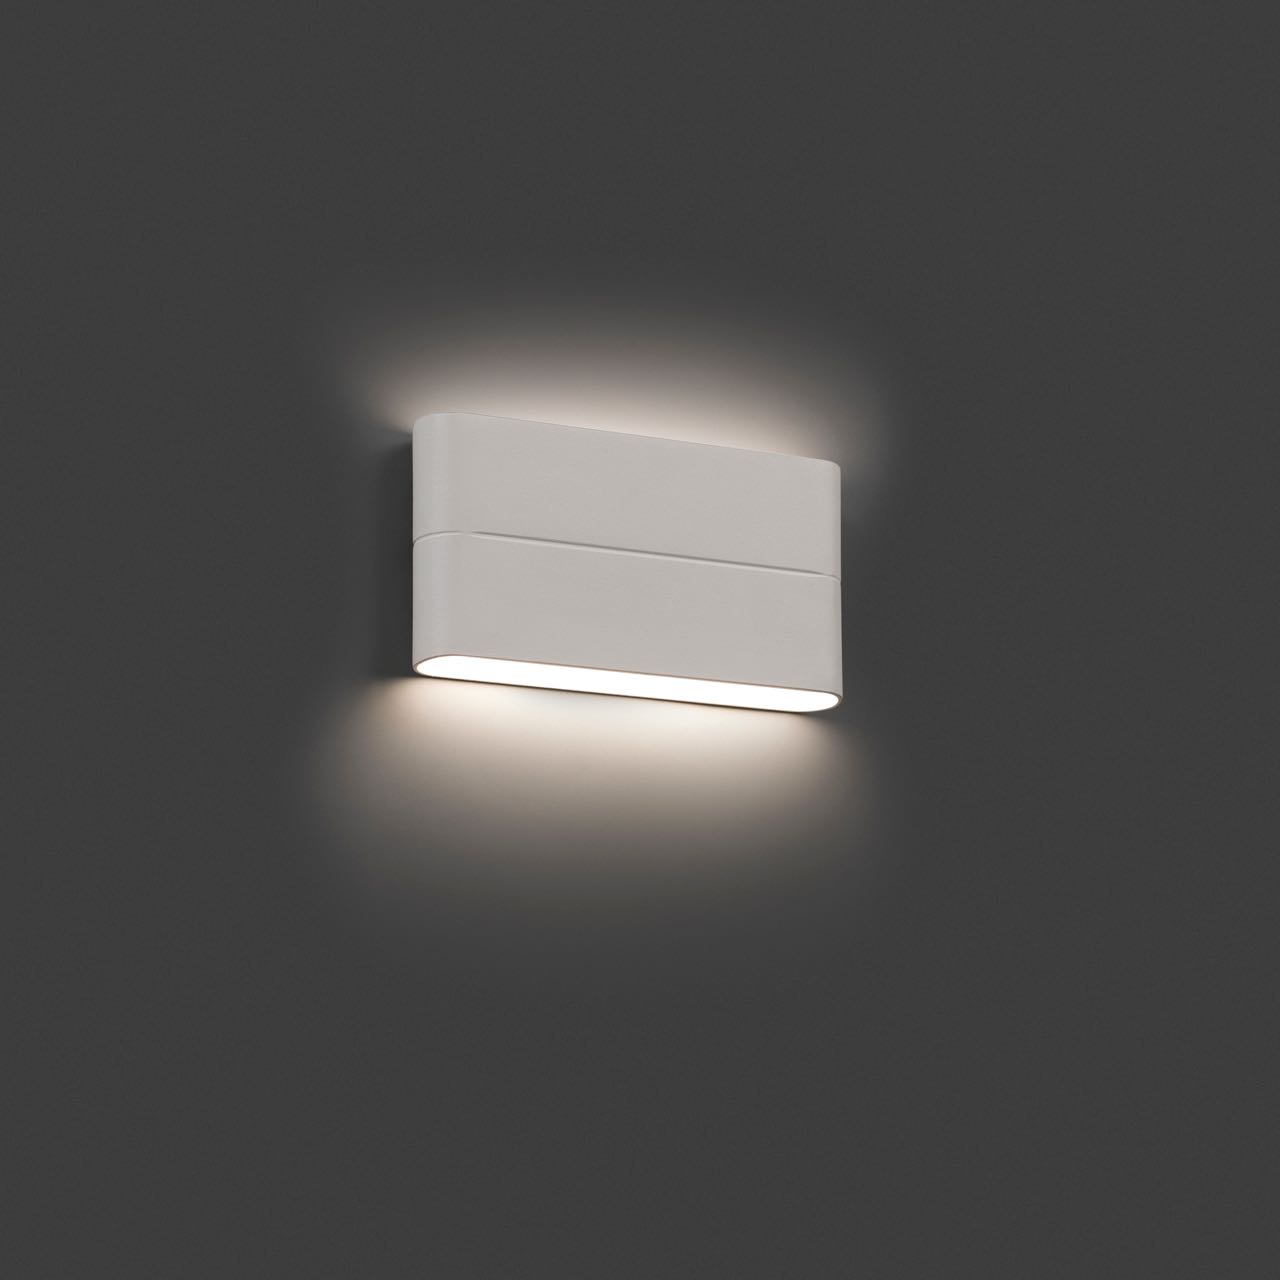 Salida Aplique Doble De Exterior Pared Led xBrdeCoW